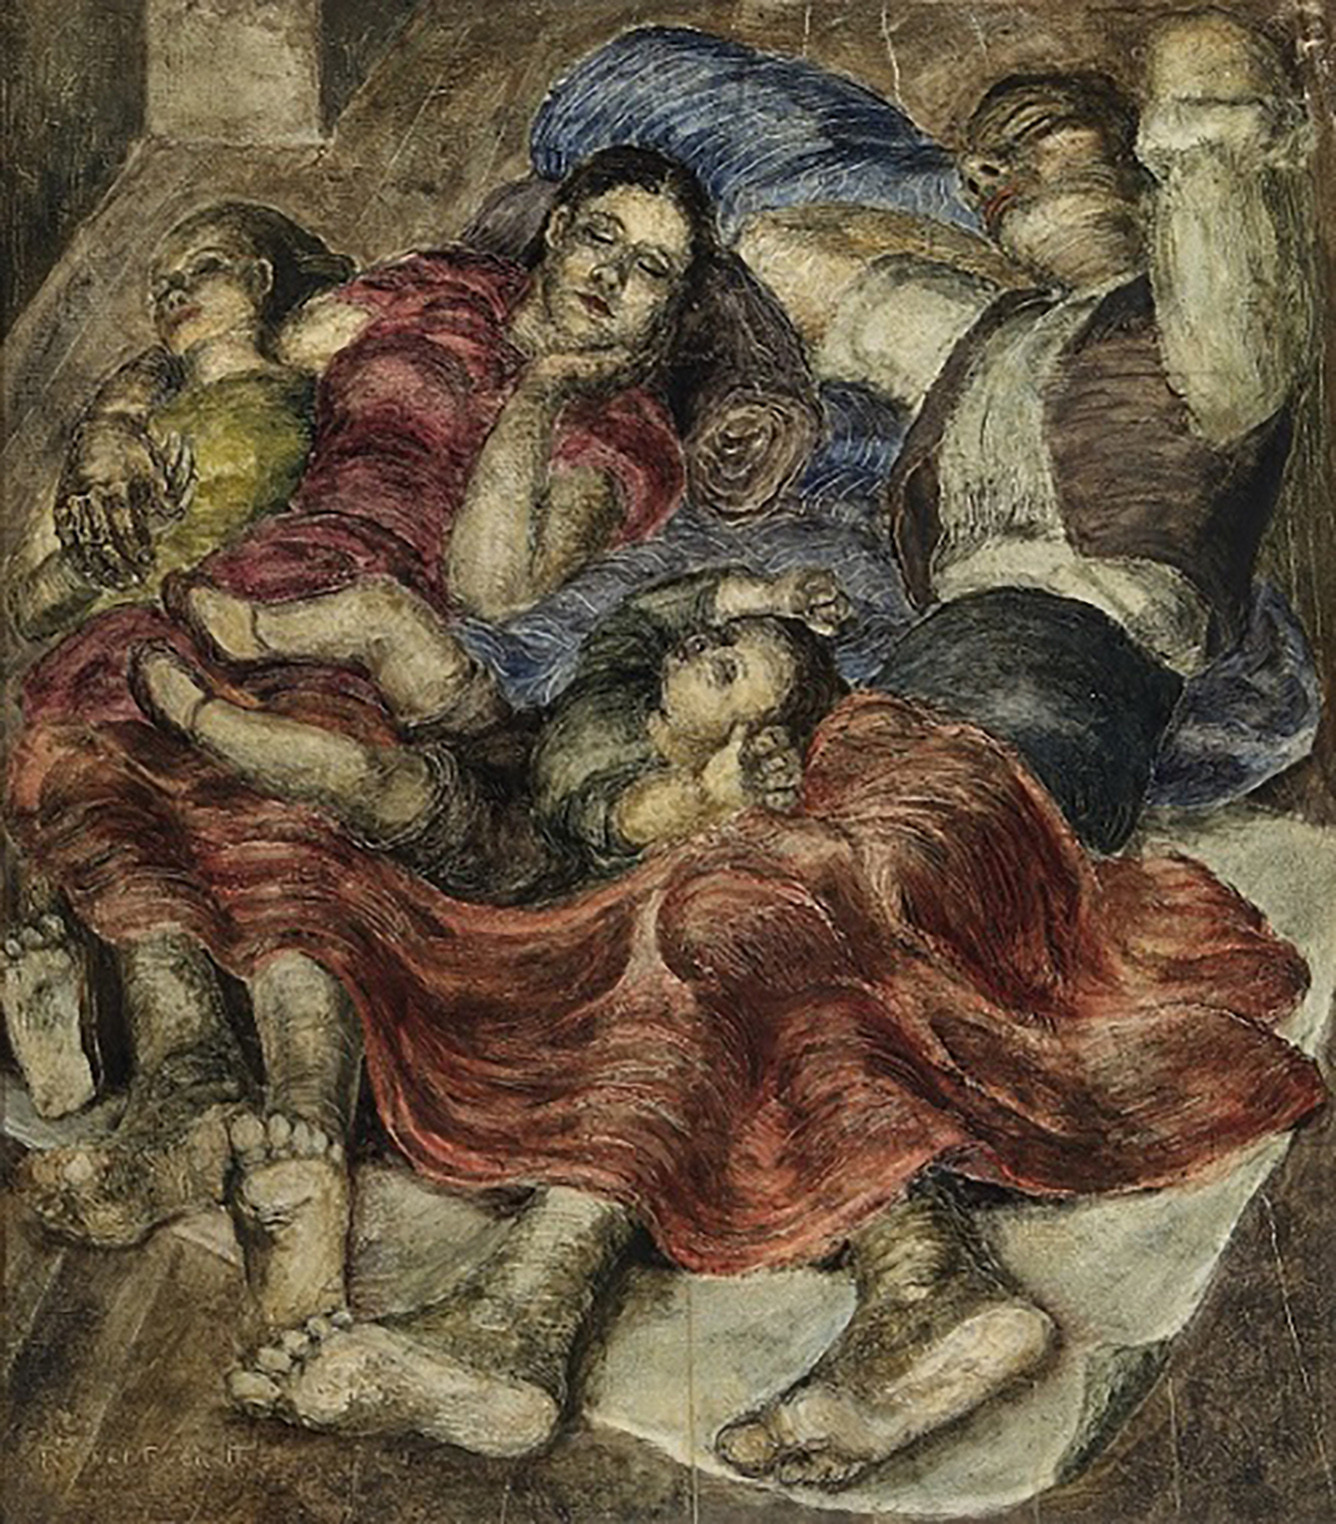 Painting by Rachel Reckitt showing Spanish Refugees sleeping on the platform of an Underground Station